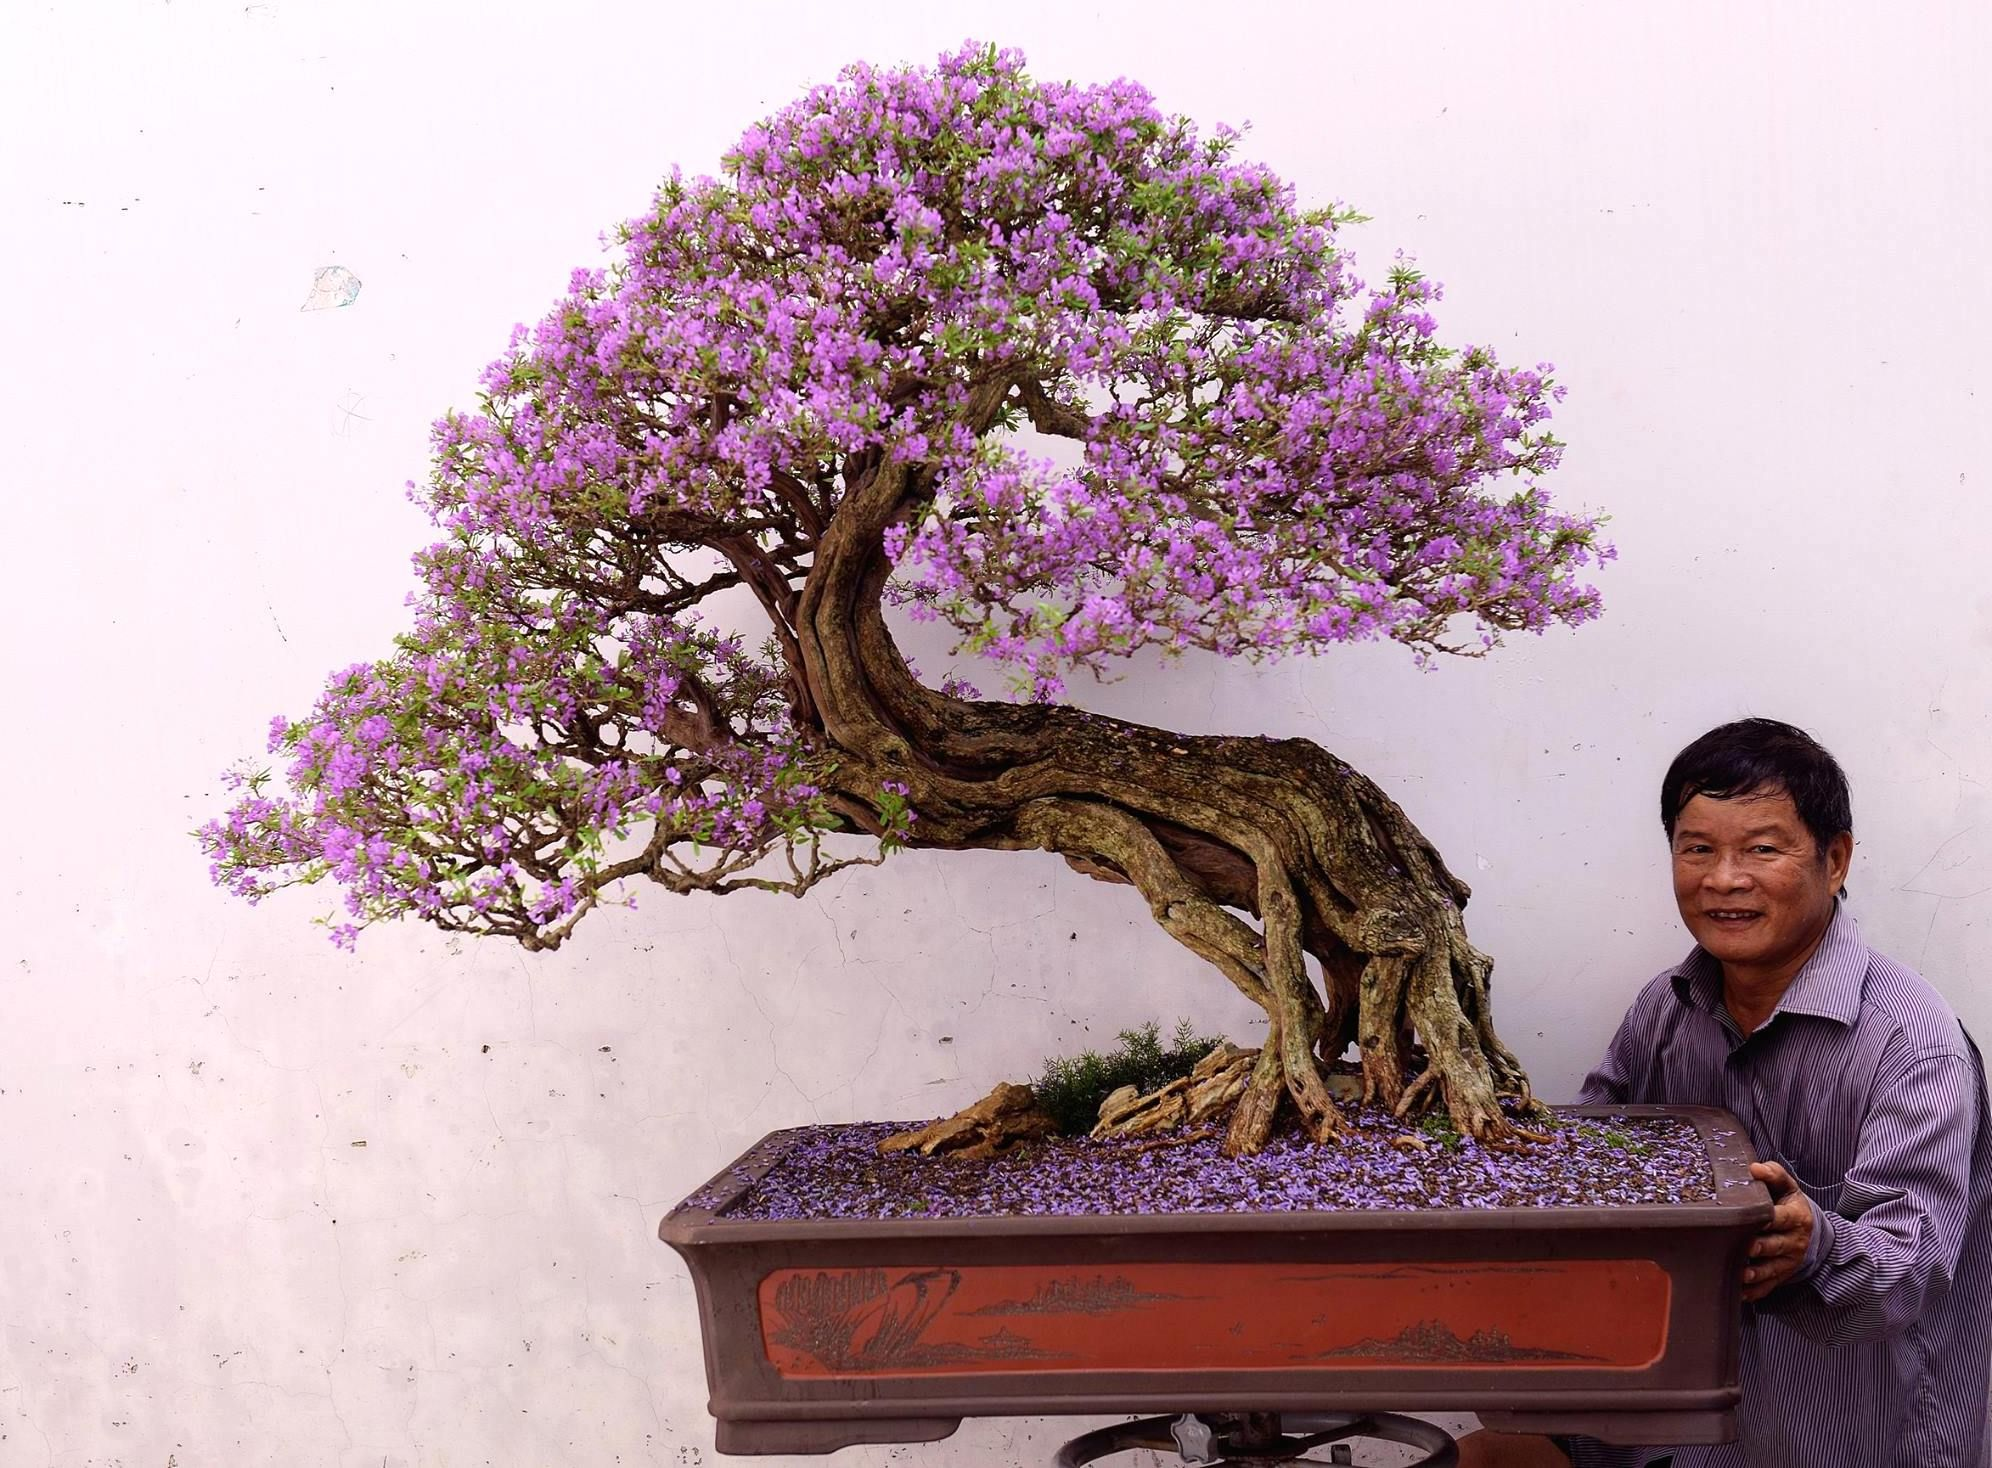 Big Bonsai Tree With Wonderful Purple Flowers Not Entirely Sure About The Tree Species Though Perhaps A Jaca Bonsai Tree Types Bonsai Tree Indoor Bonsai Tree